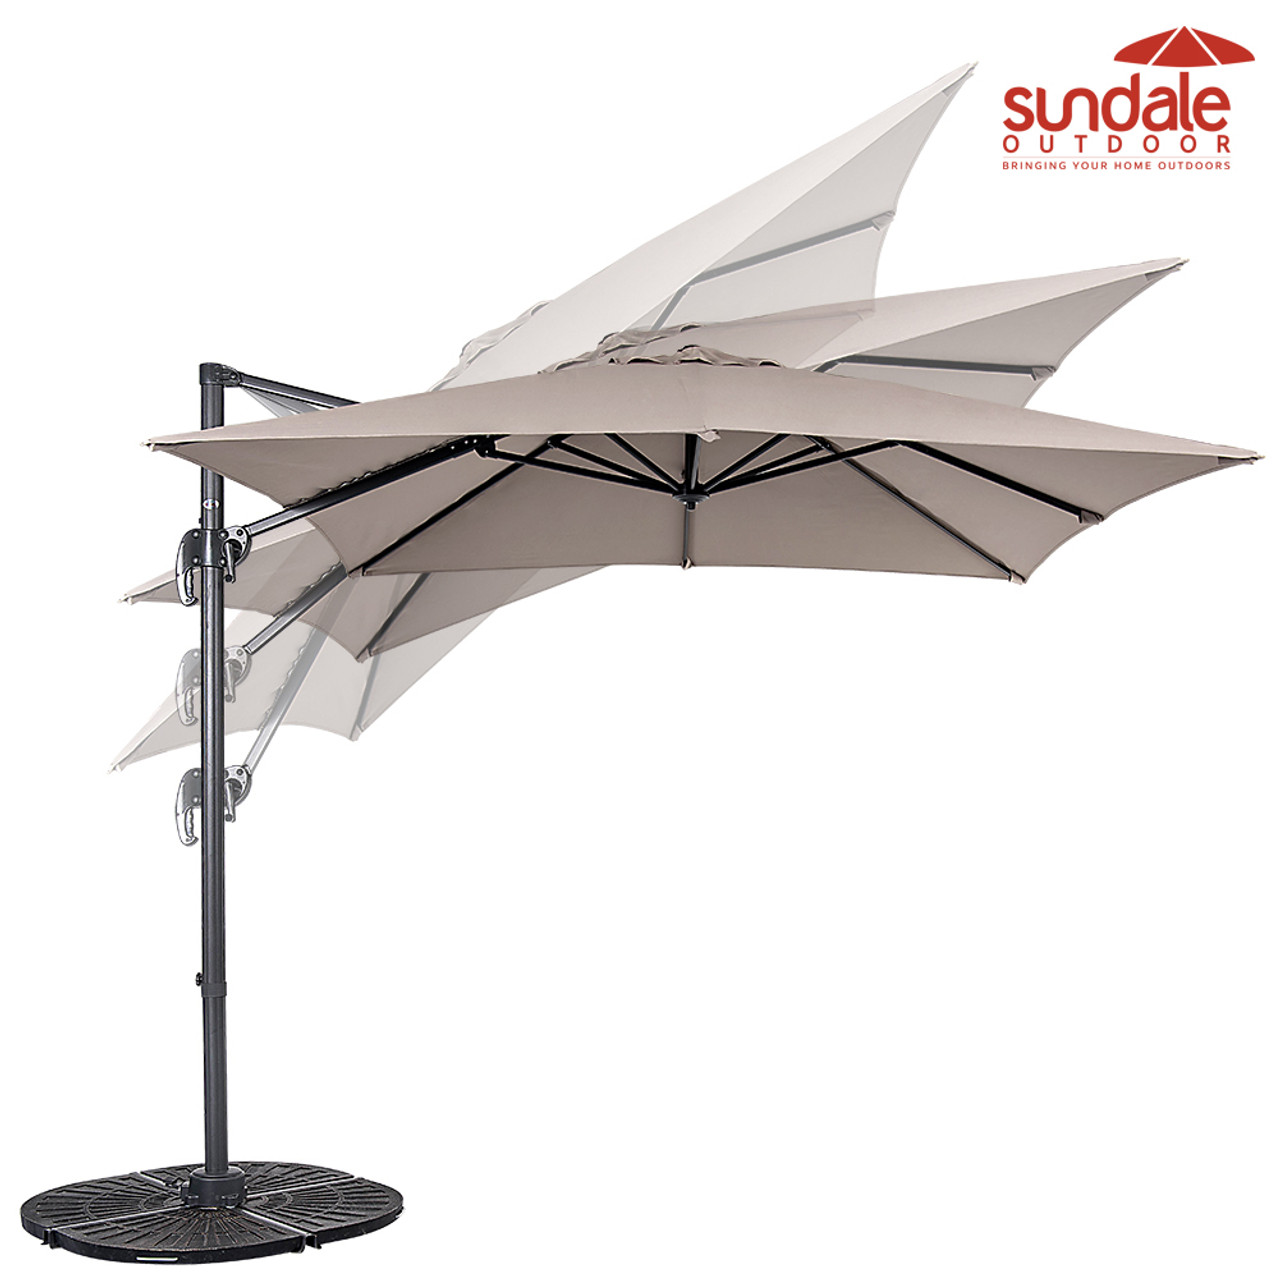 8.2ft Square Hanging Roma Offset Umbrella Outdoor Patio Sun Shade Cantilever Crank Canopy (Taupe)  sc 1 st  Sundale Outdoor & ft Square Hanging Roma Offset Umbrella Outdoor Patio Sun Shade ...